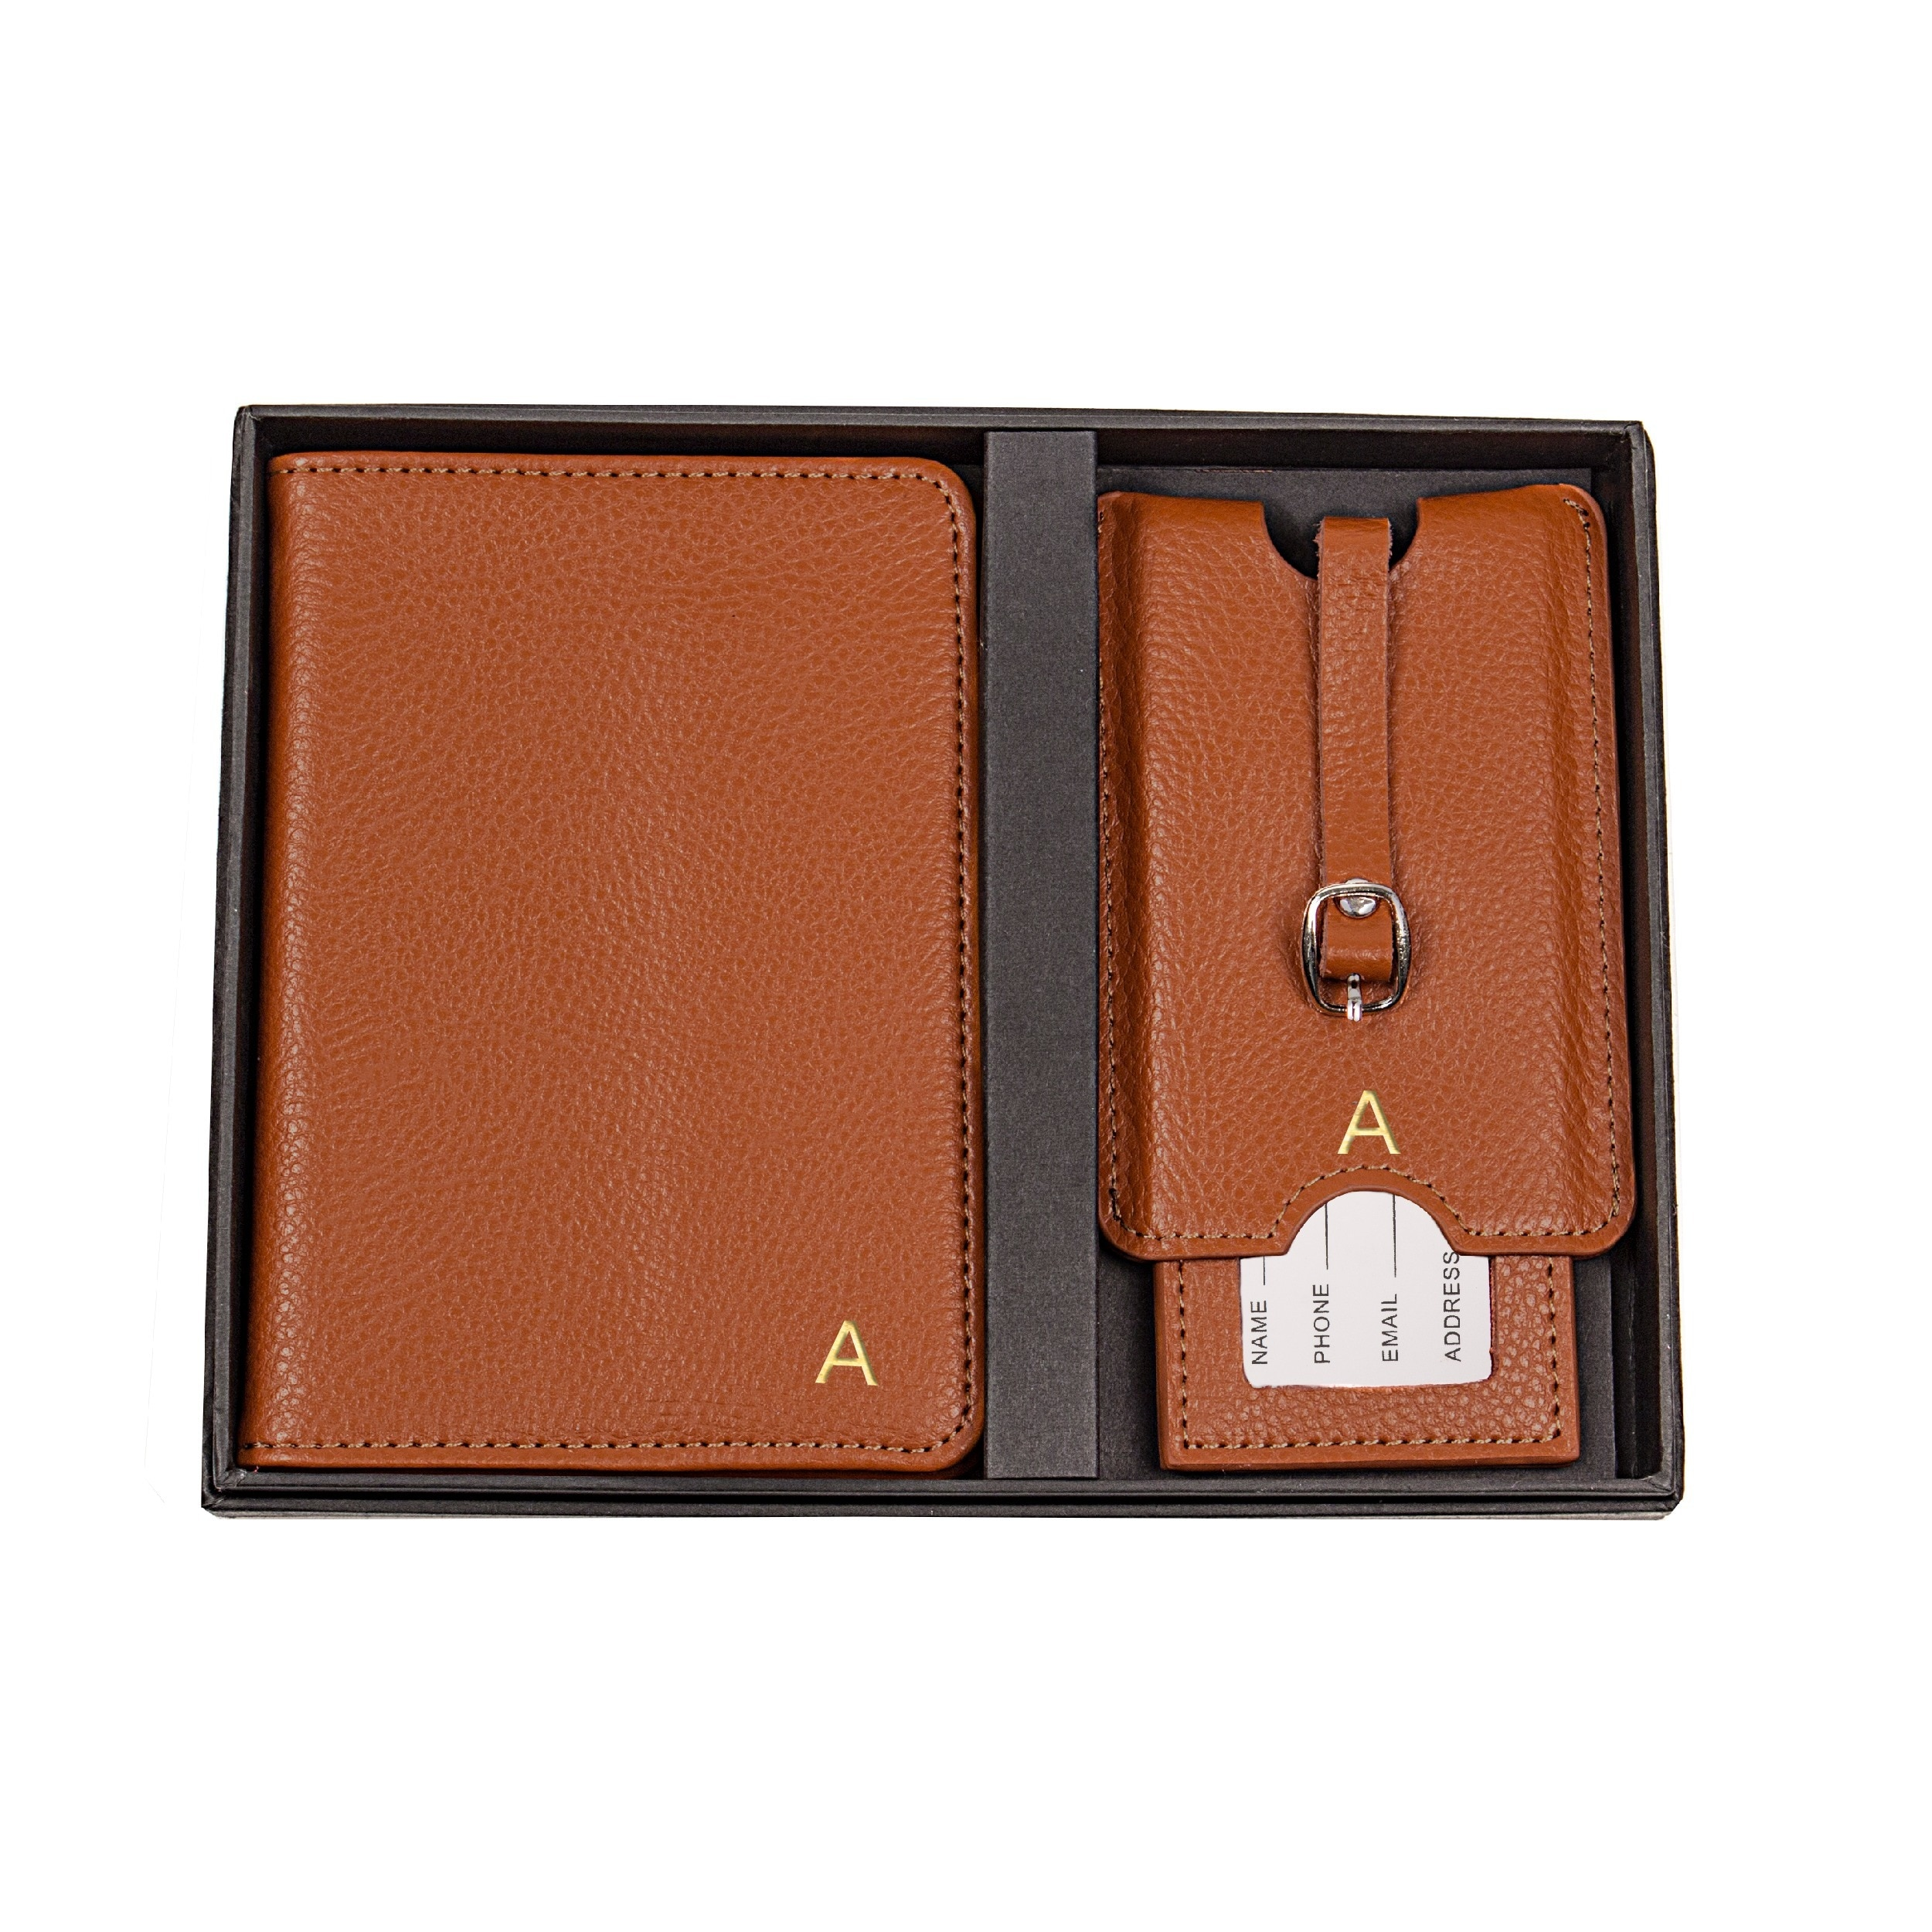 bd2e46440c6c Personalized Brown Leather Passport Holder & Luggage Tag Set